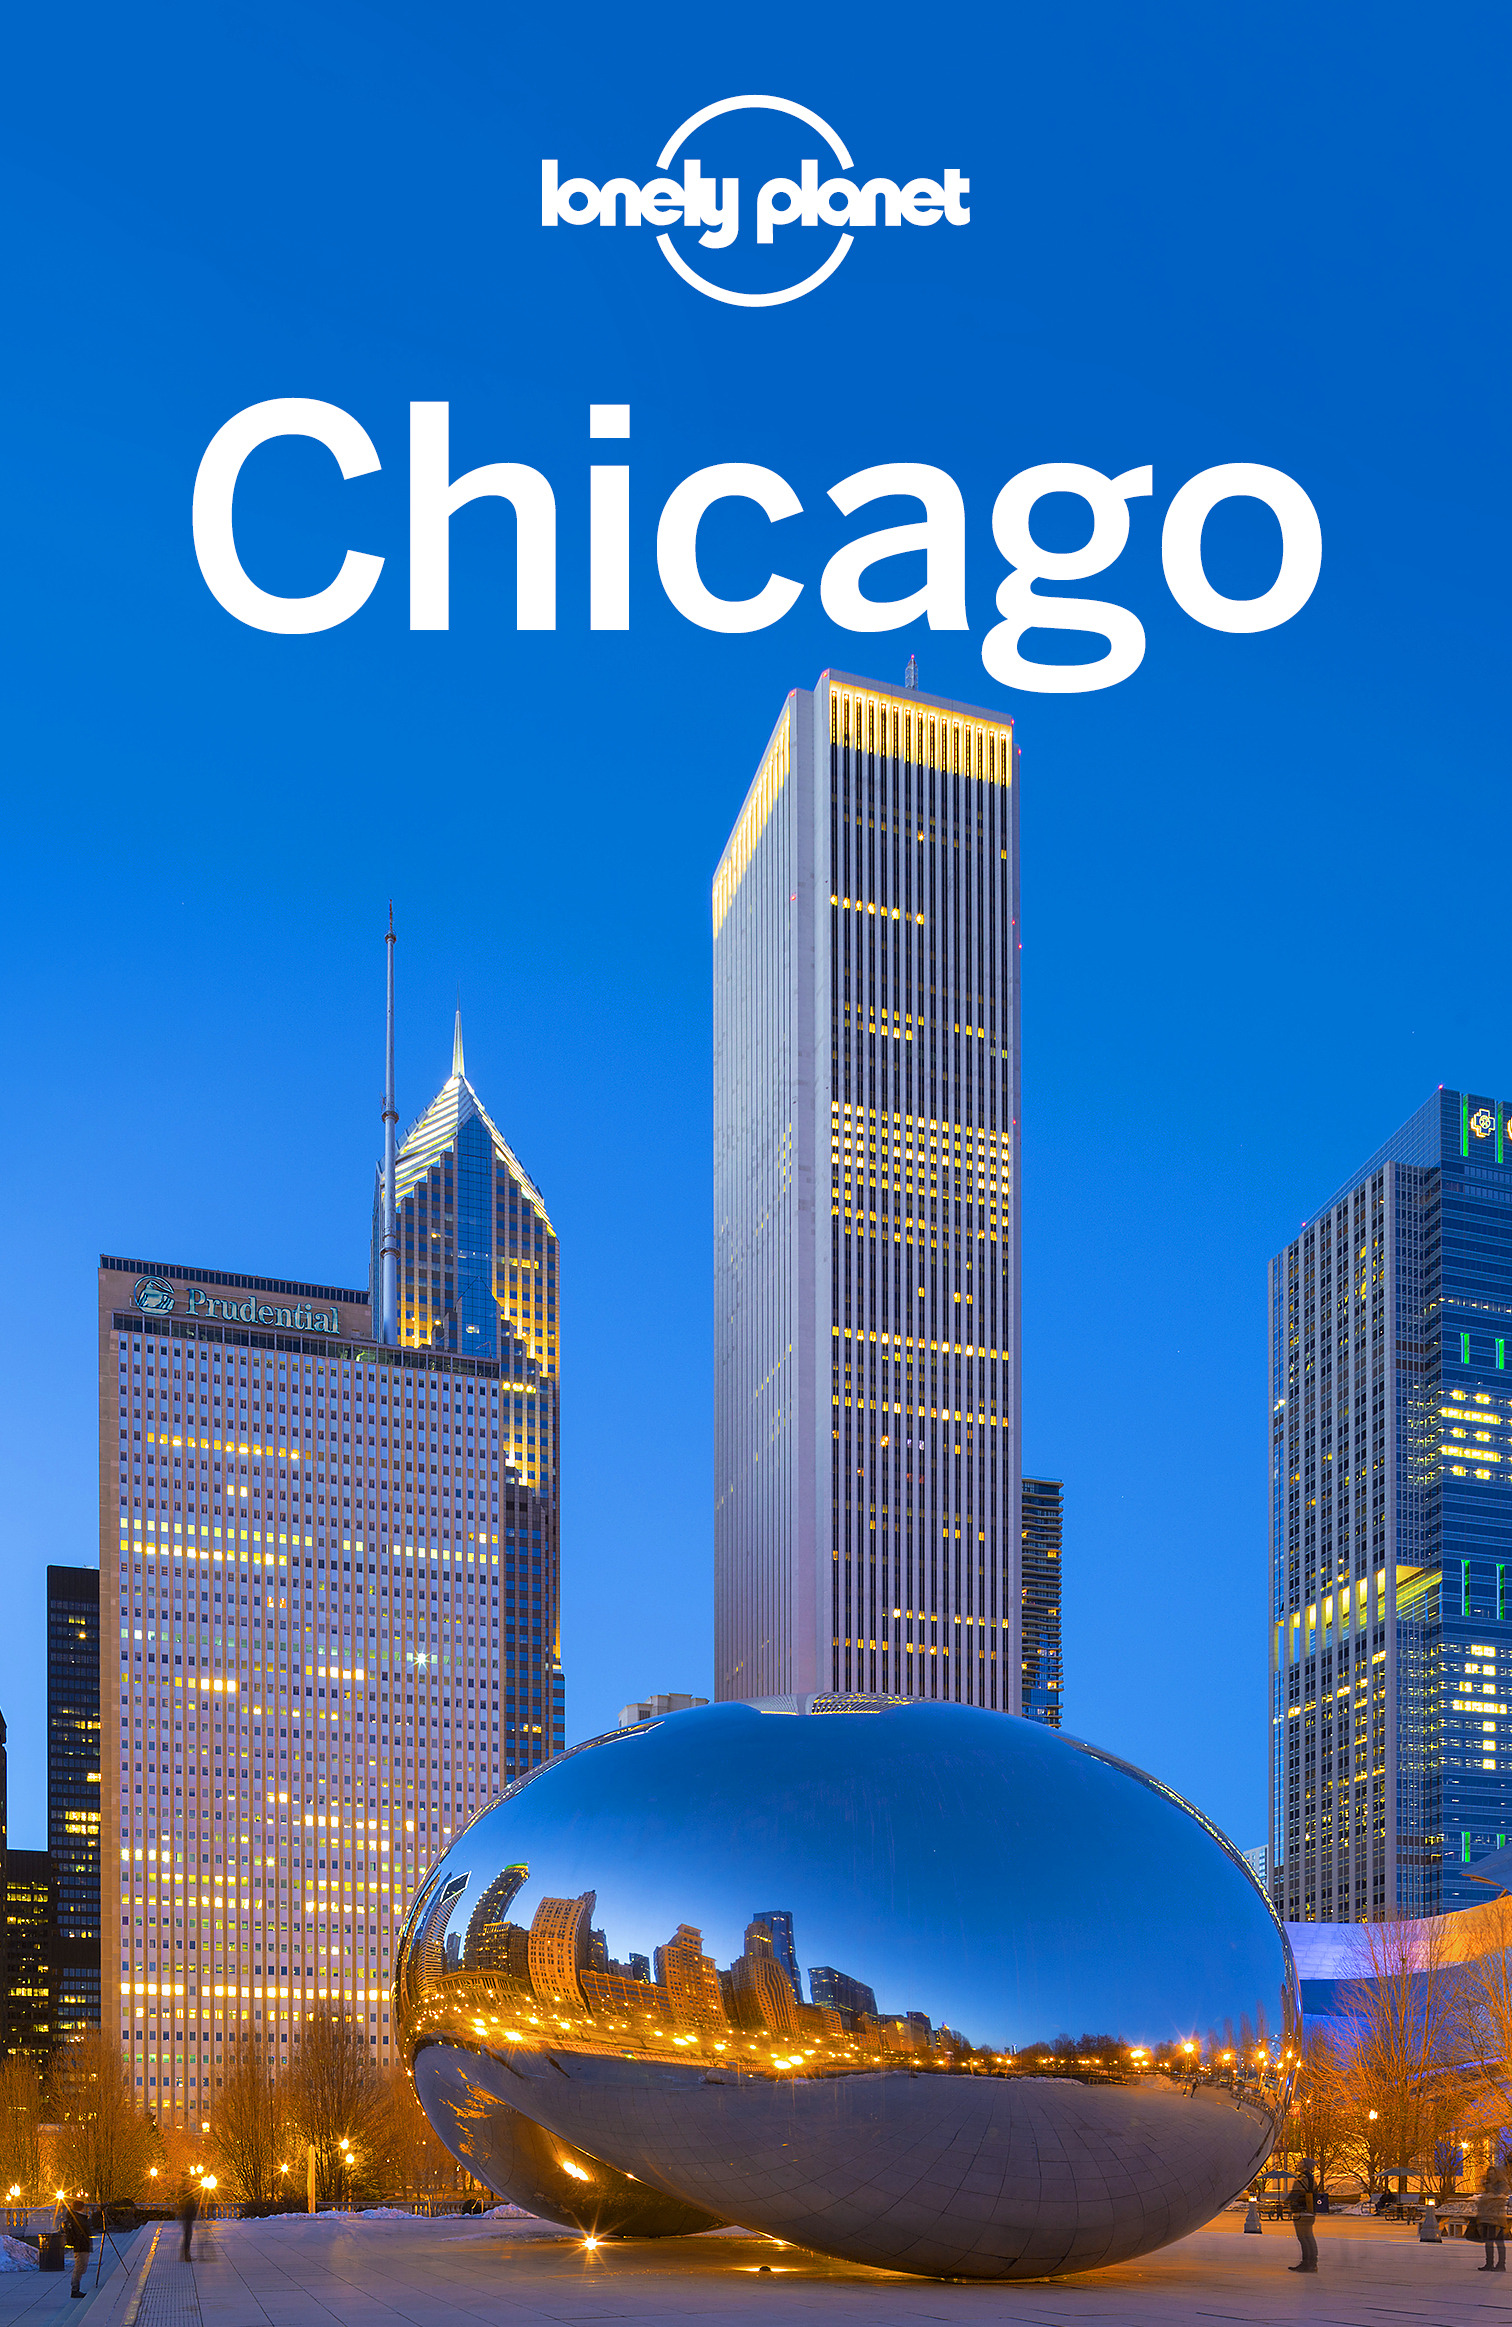 Planet, Lonely - Lonely Planet Chicago, ebook